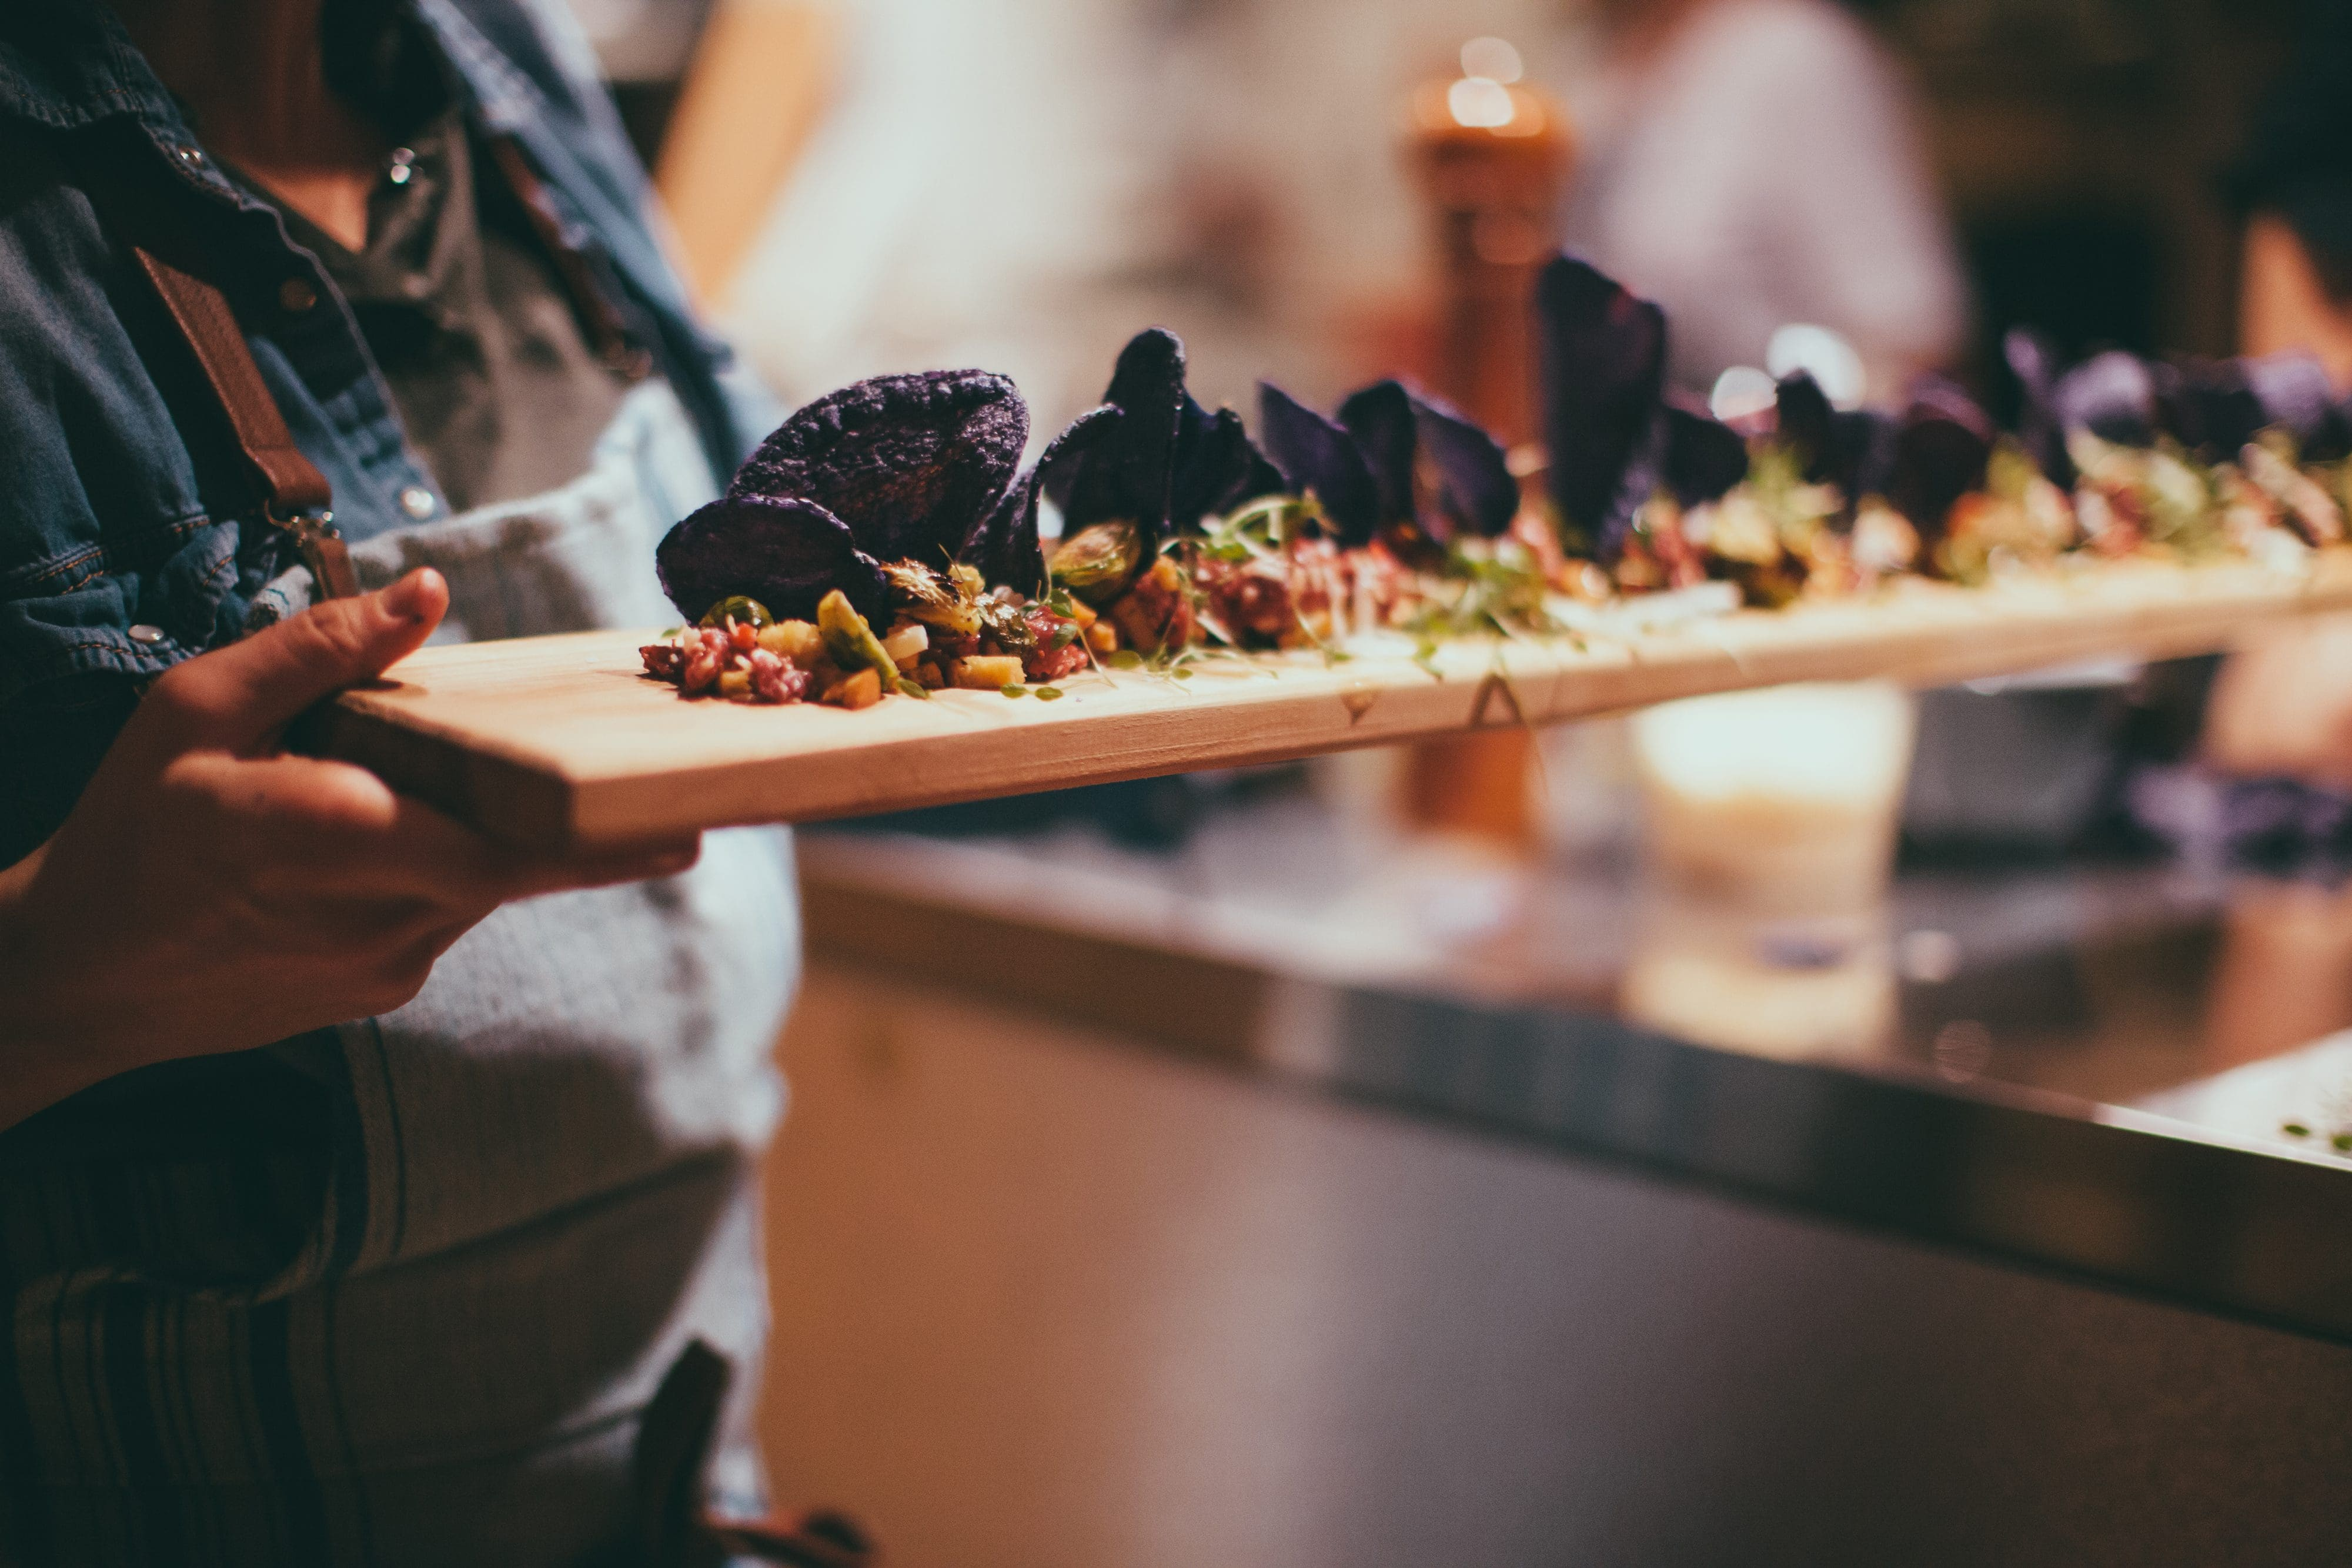 A platter of food being served